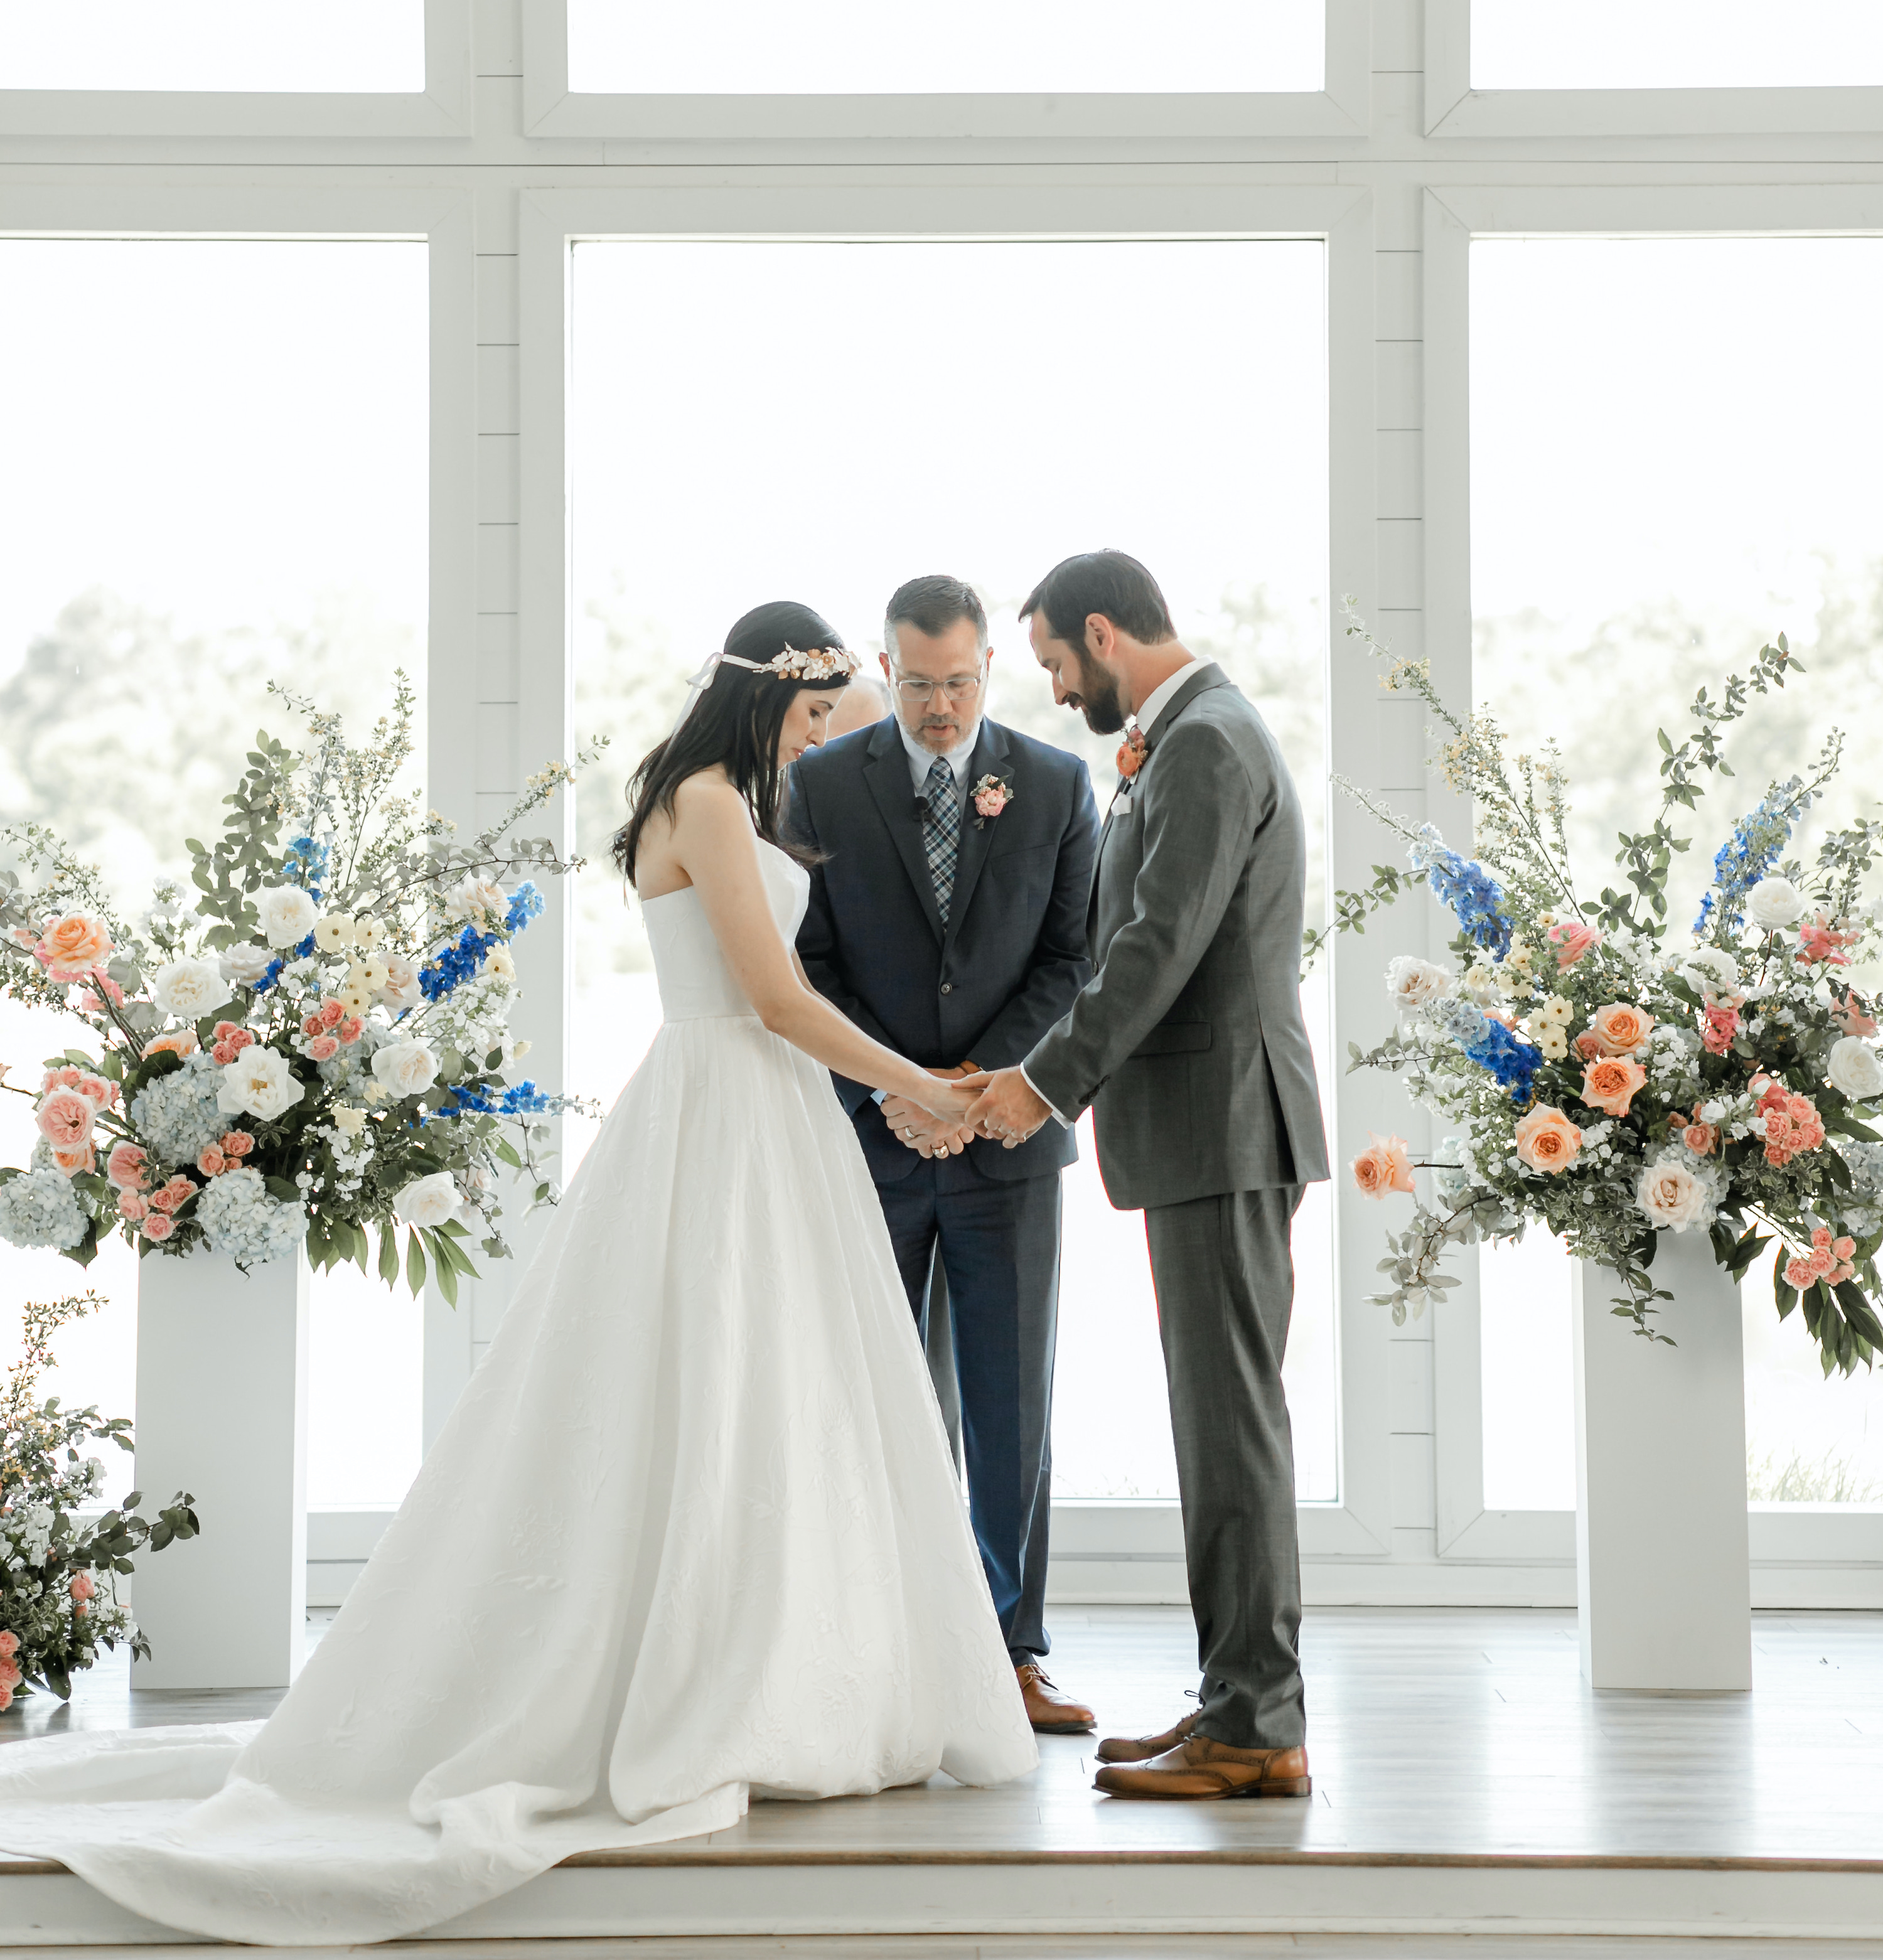 The bride and groom stand at the altar holding hands with flowers surrounding them.